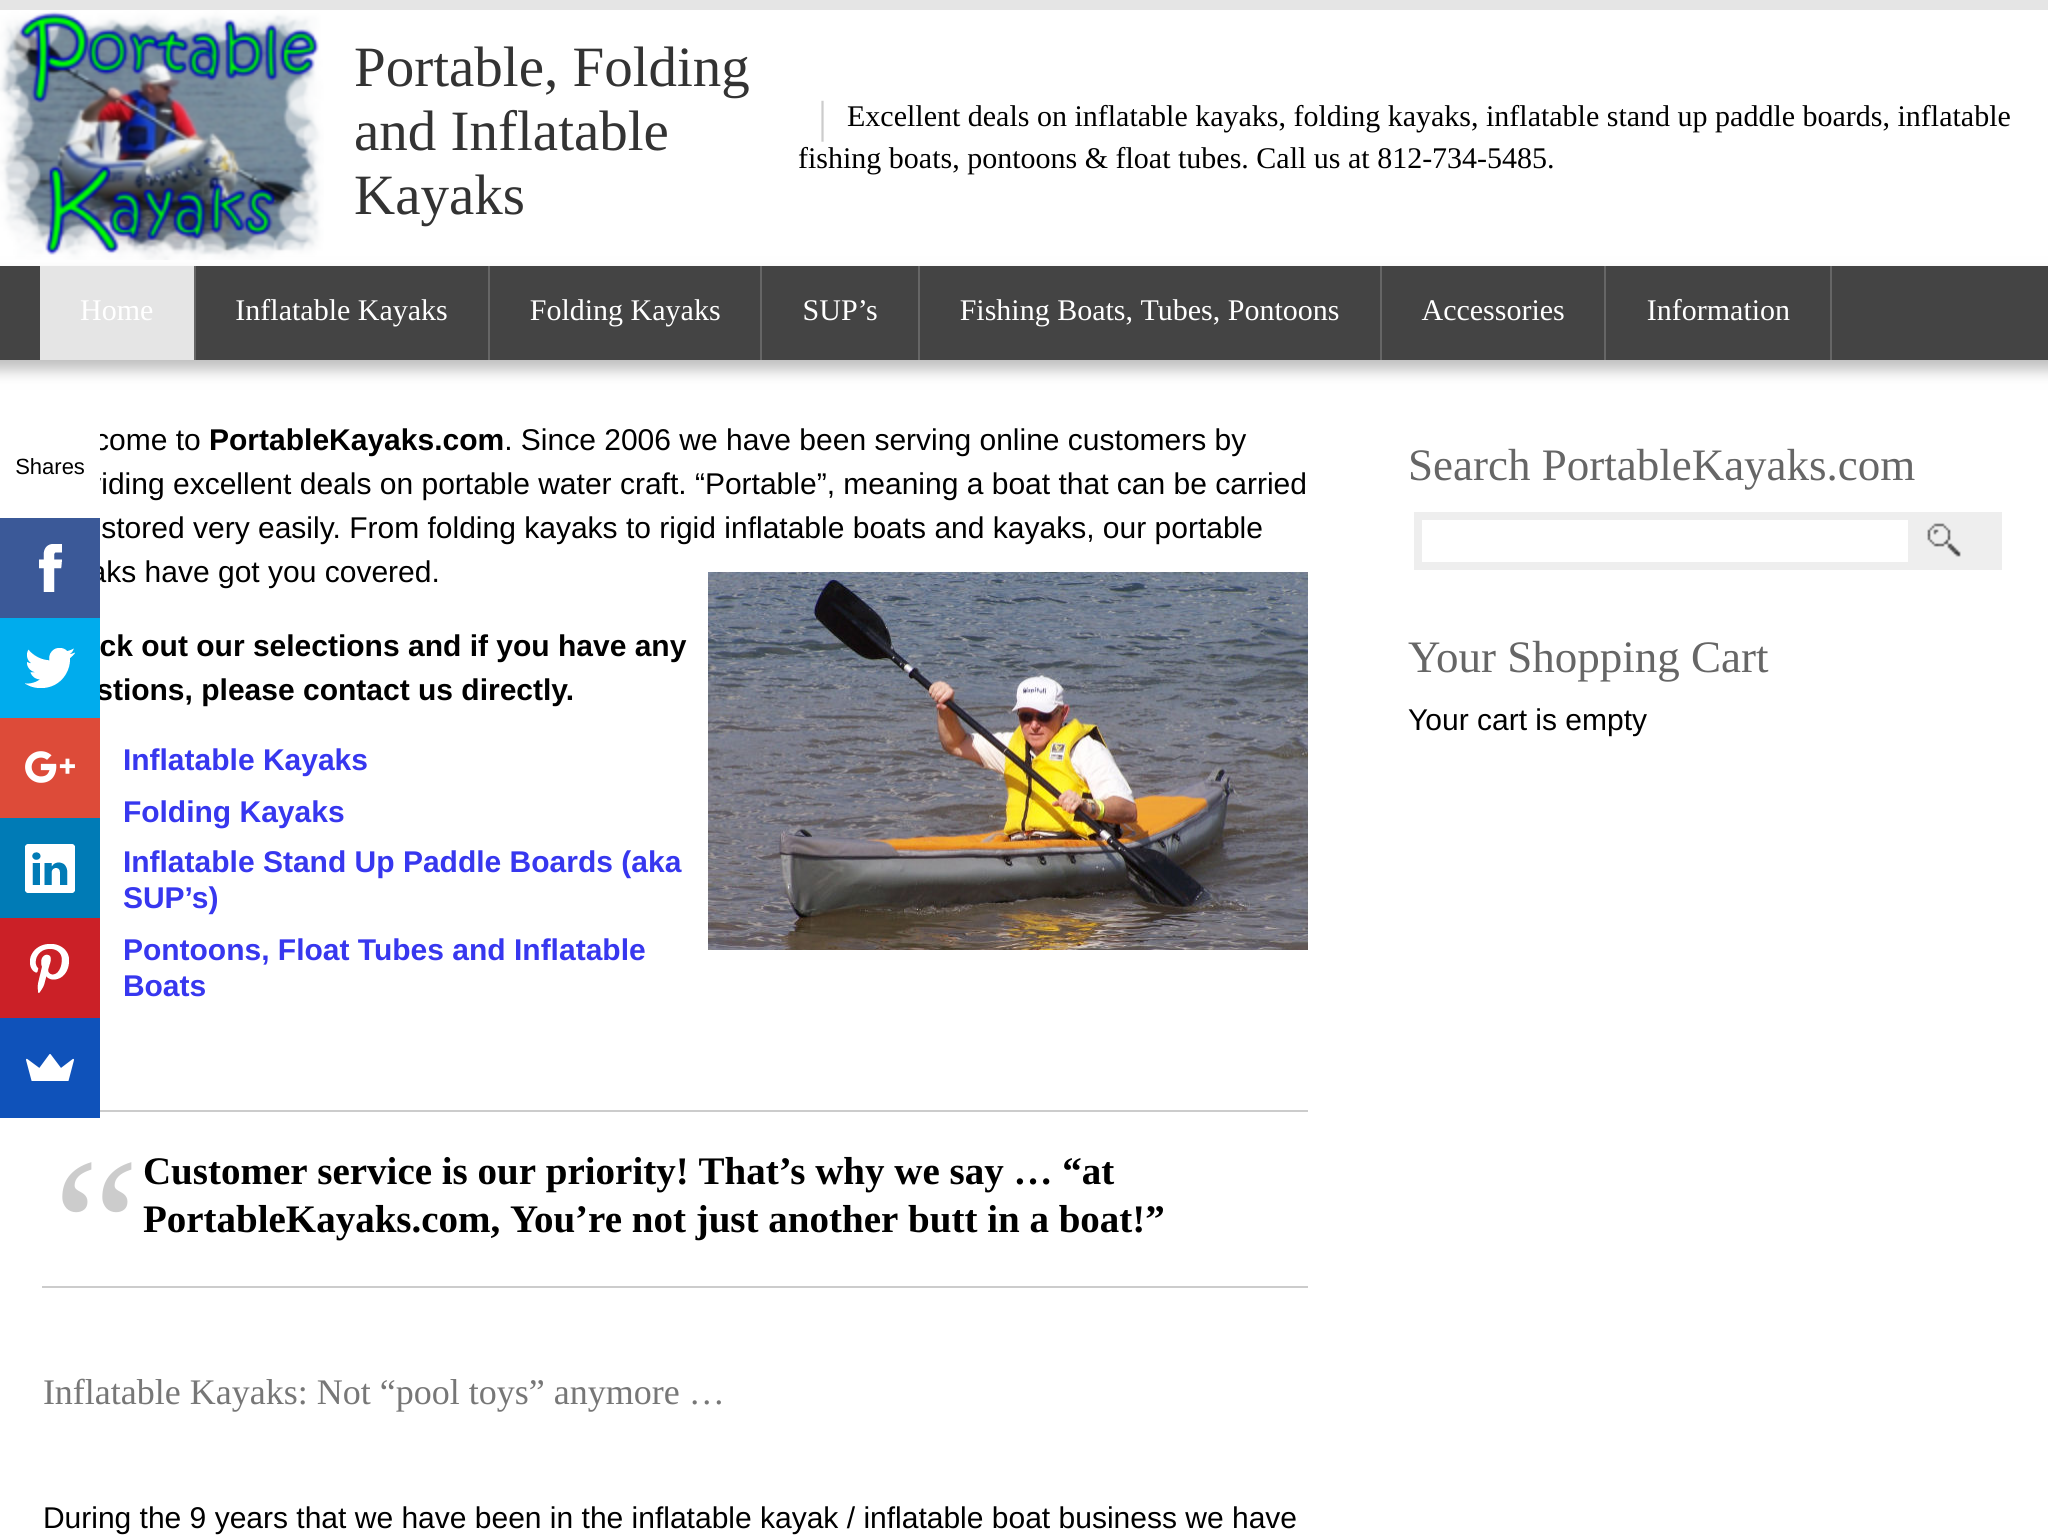 Portable, Folding and Inflatable Kayaks Traffic Stats